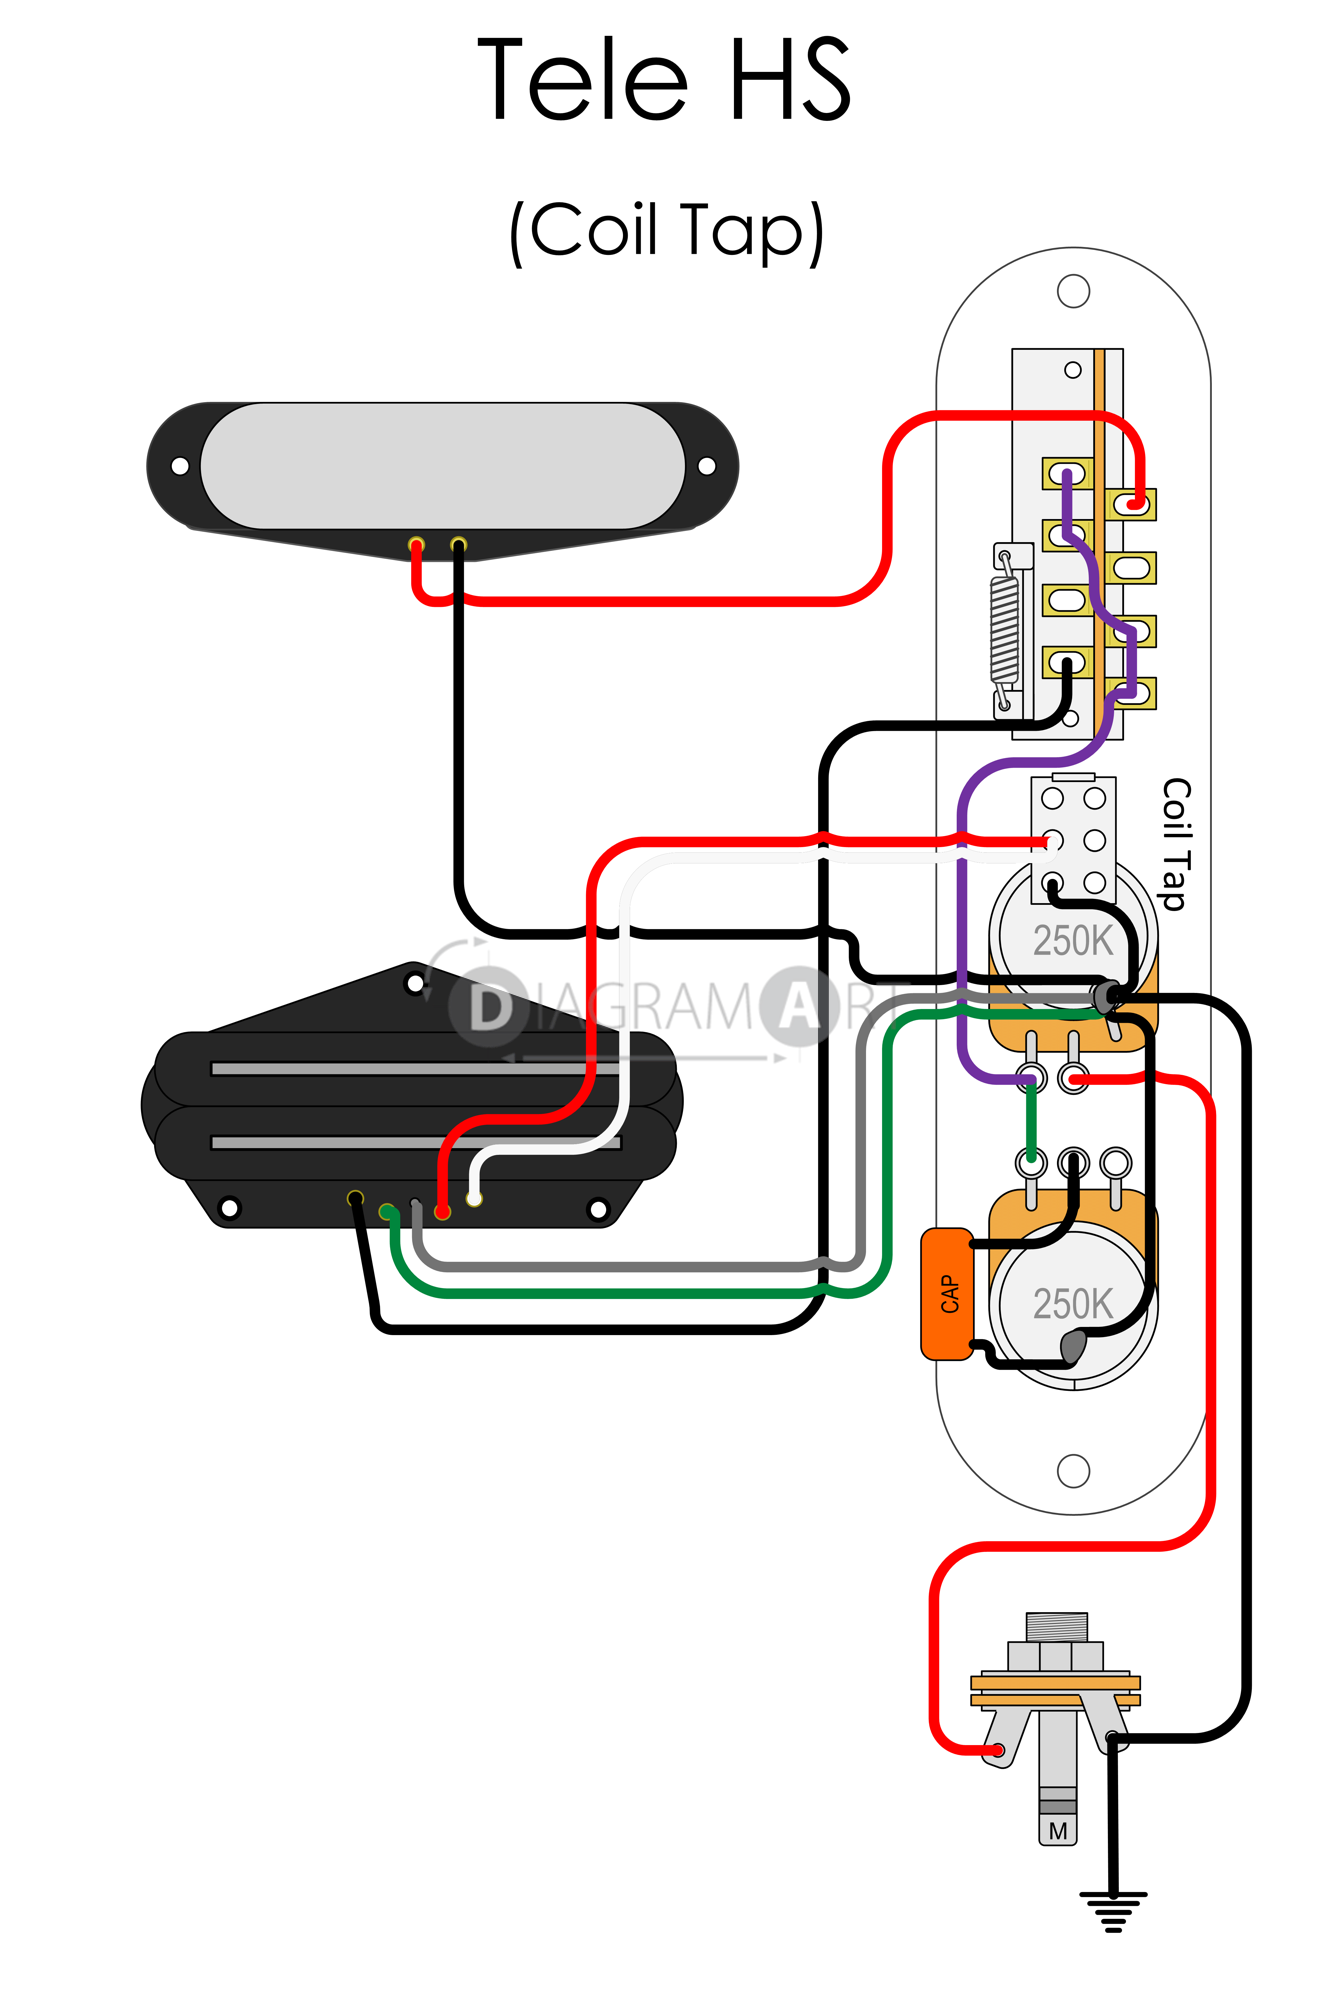 Guitar Coil Split Wiring Modern Design Of Diagram For Humbuckers Diagrams Electric Tele Hs Tap Circuit Rh Diagramart Com Humbucker 2